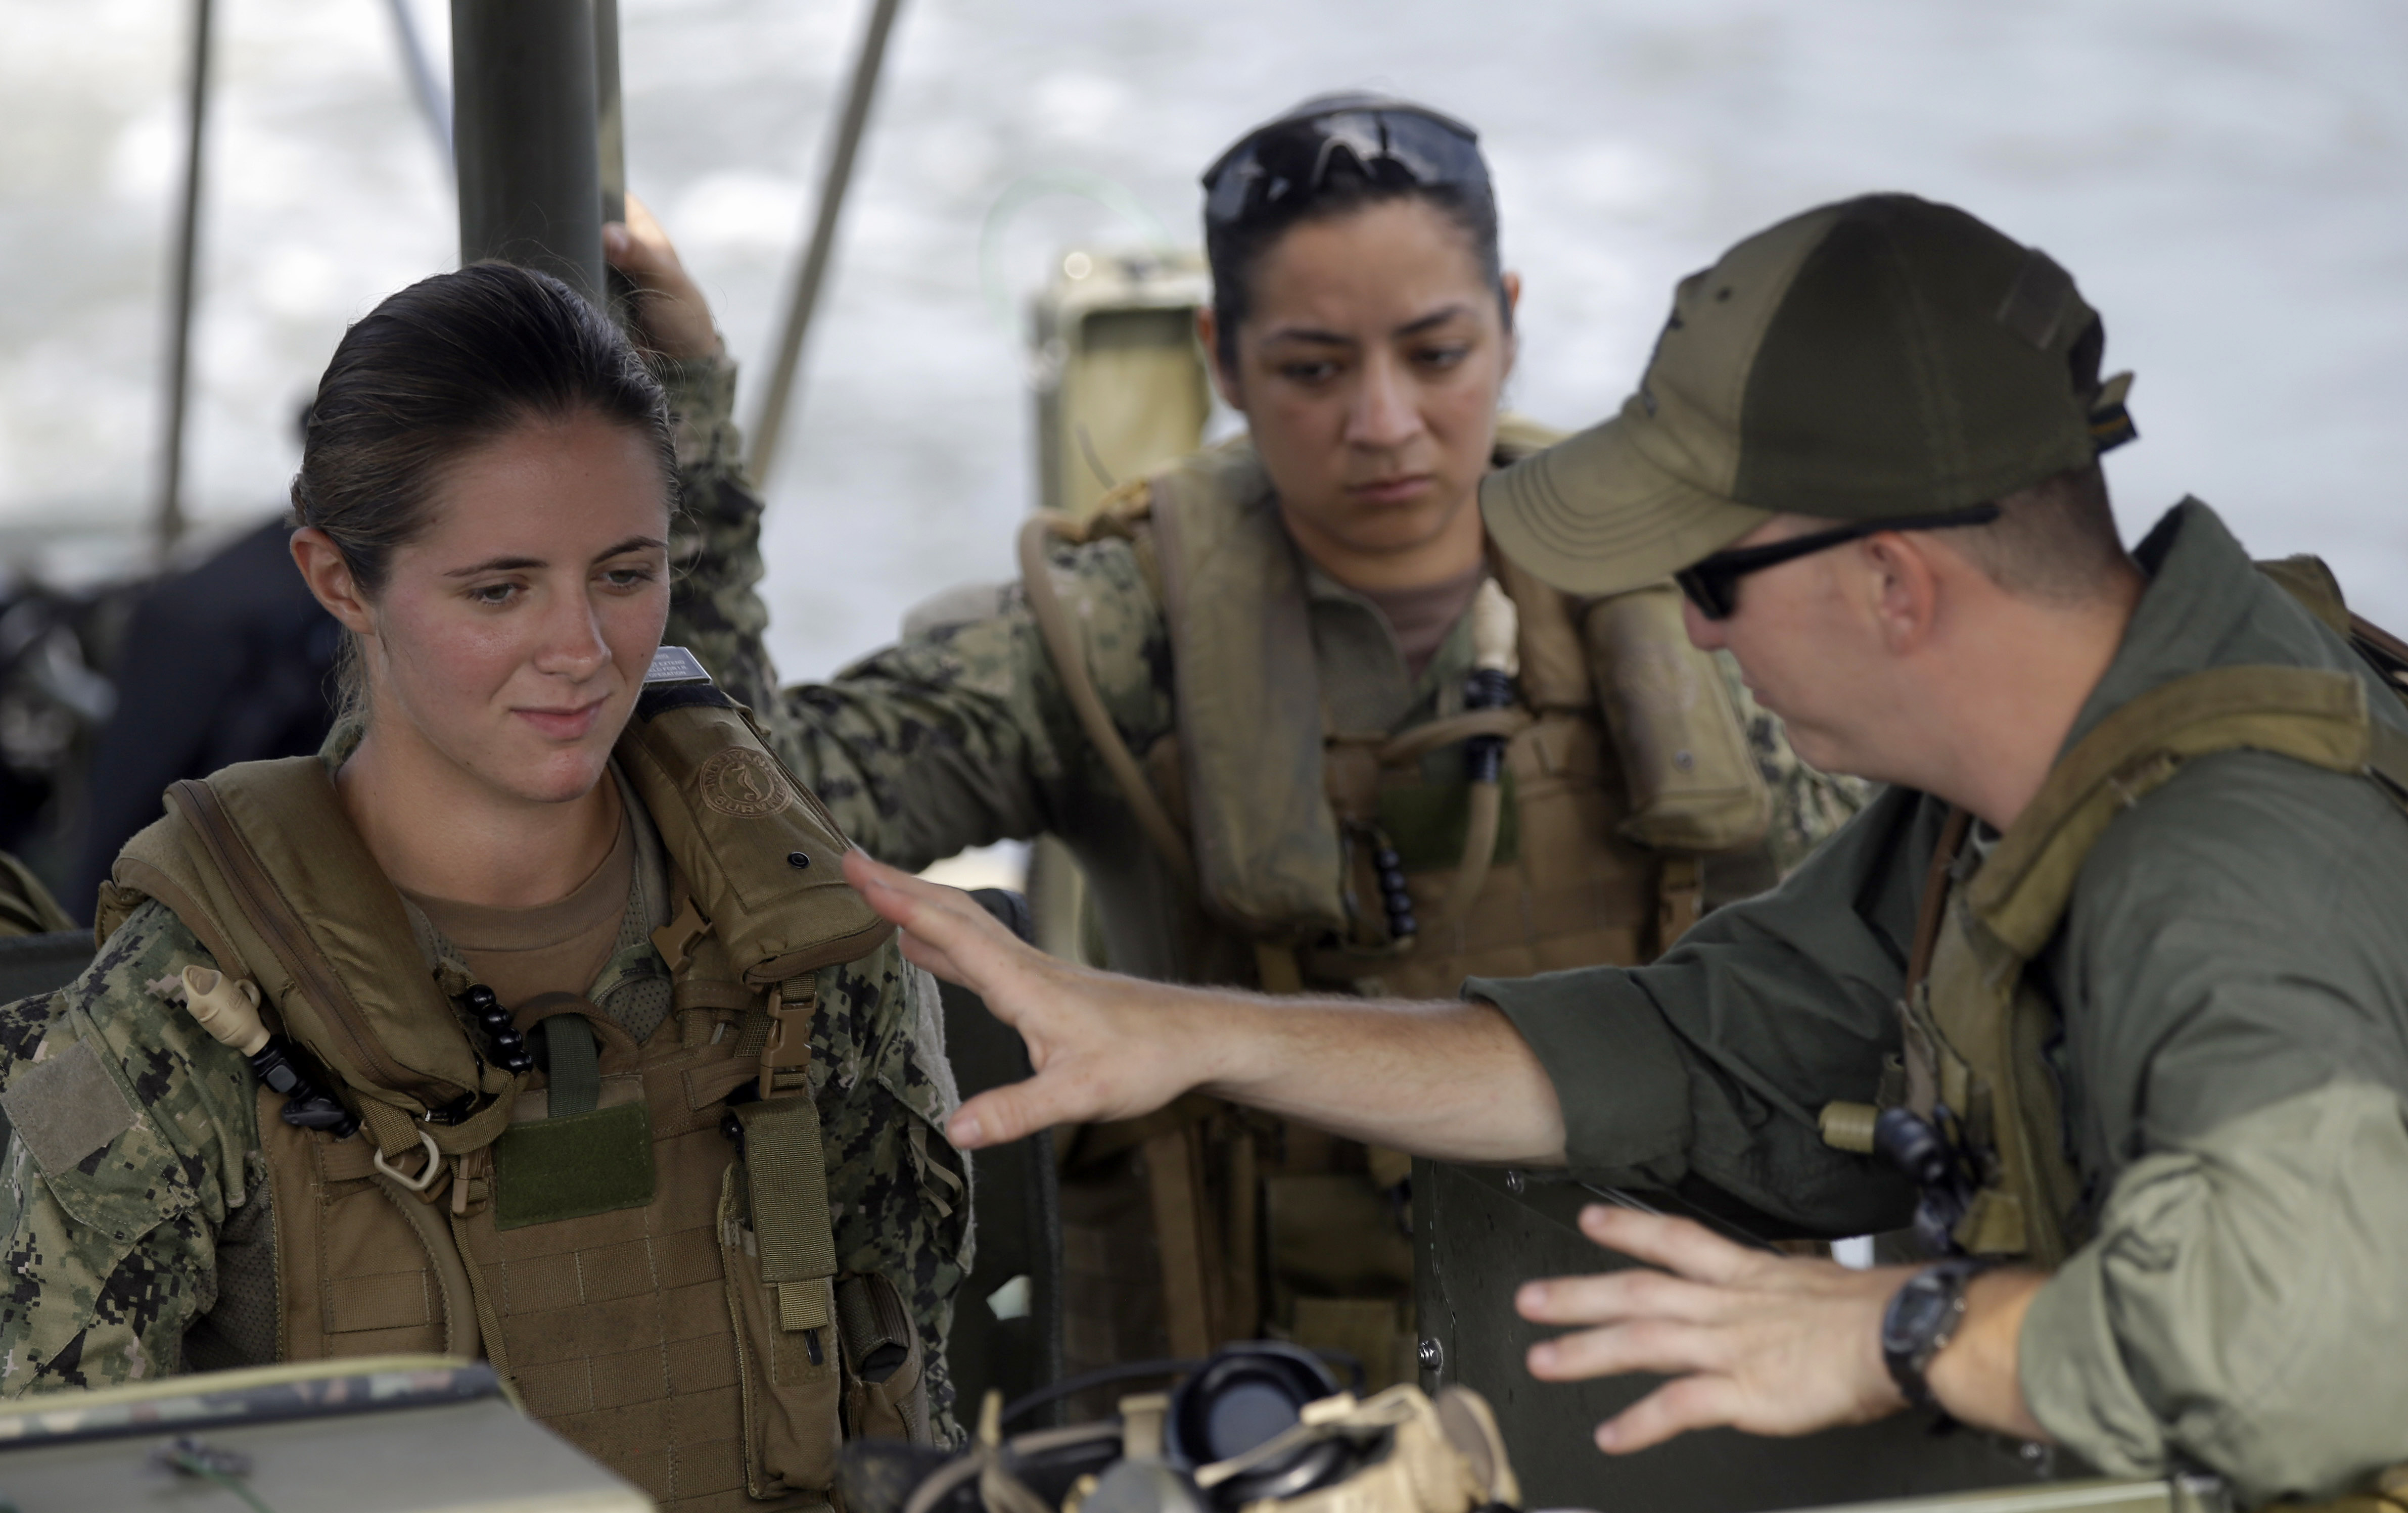 RETRANSMISSION TO REMOVE THE REFERENCE TO THE ARMY RANGERS. THESE WOMEN ARE NOT TRAINING IN THE RANGERS PROGRAM - FILE - In this Aug. 13, 2013 file photo, U.S. Navy Master-at-Arms Third Class Danielle Hinchliff, left, and Master-at-Arms Third Class Anna Schnatzmeyer, center, participate in a U.S. Navy Riverine Crewman Course under instructor Boatswain's Mate Second Class Christopher Johnson, right, on a Riverine Assault Boat at Camp Lejeune, N.C. The U.S. military services appear poised to allow women to serve in most, if not all, front-line jobs, including as special operations forces, according to several senior officials familiar with the discussions. (AP Photo/Gerry Broome, File)